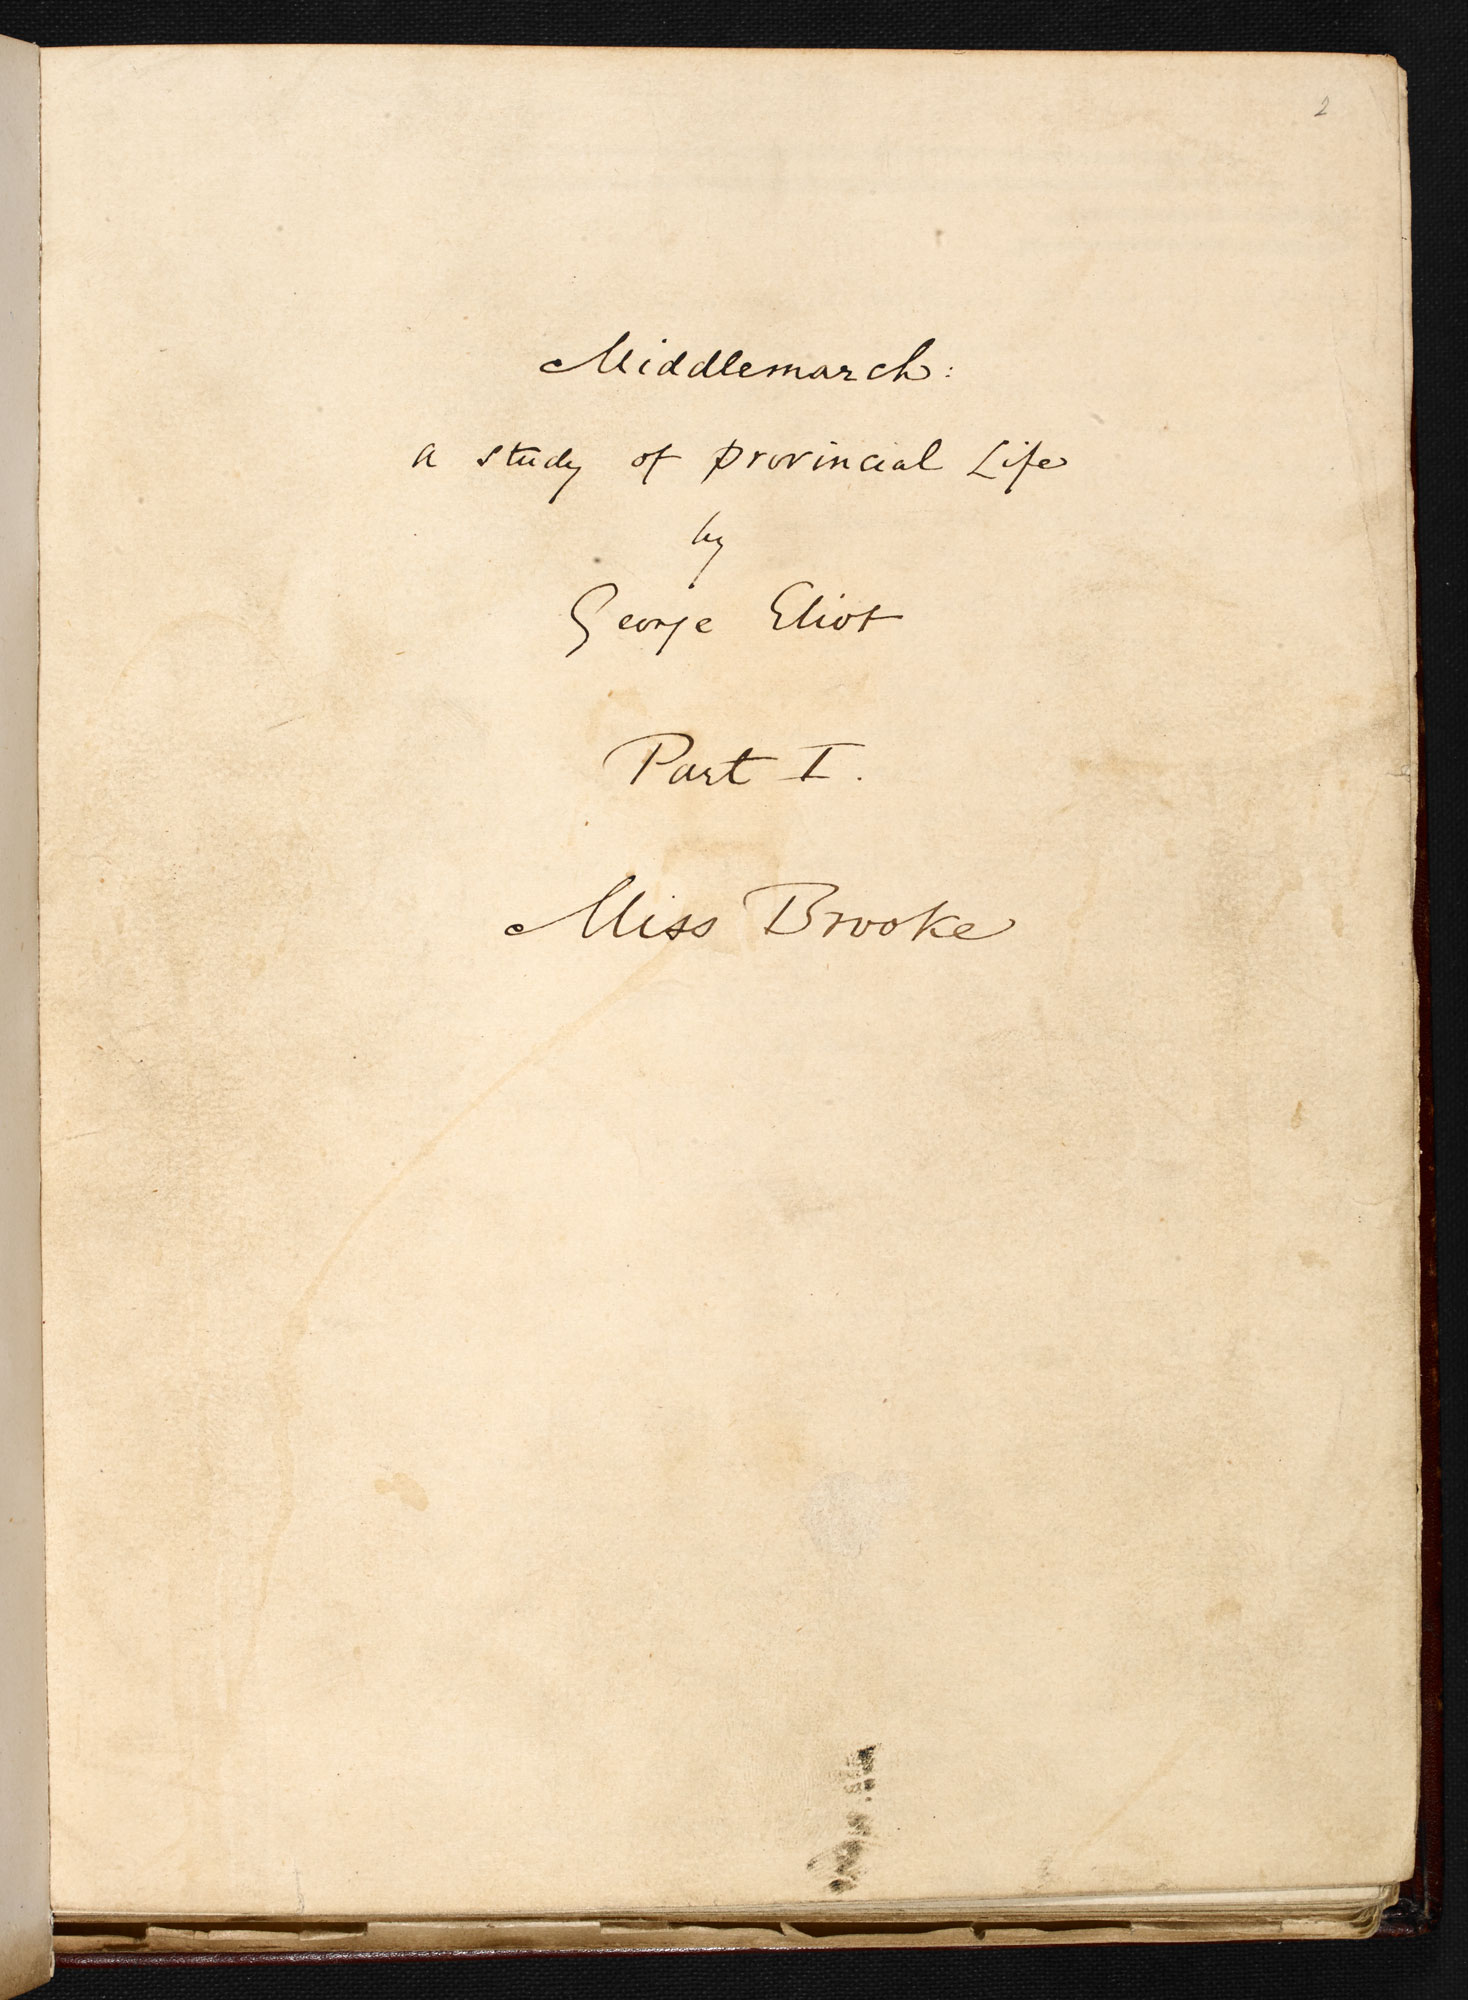 Manuscript of Middlemarch by George Eliot